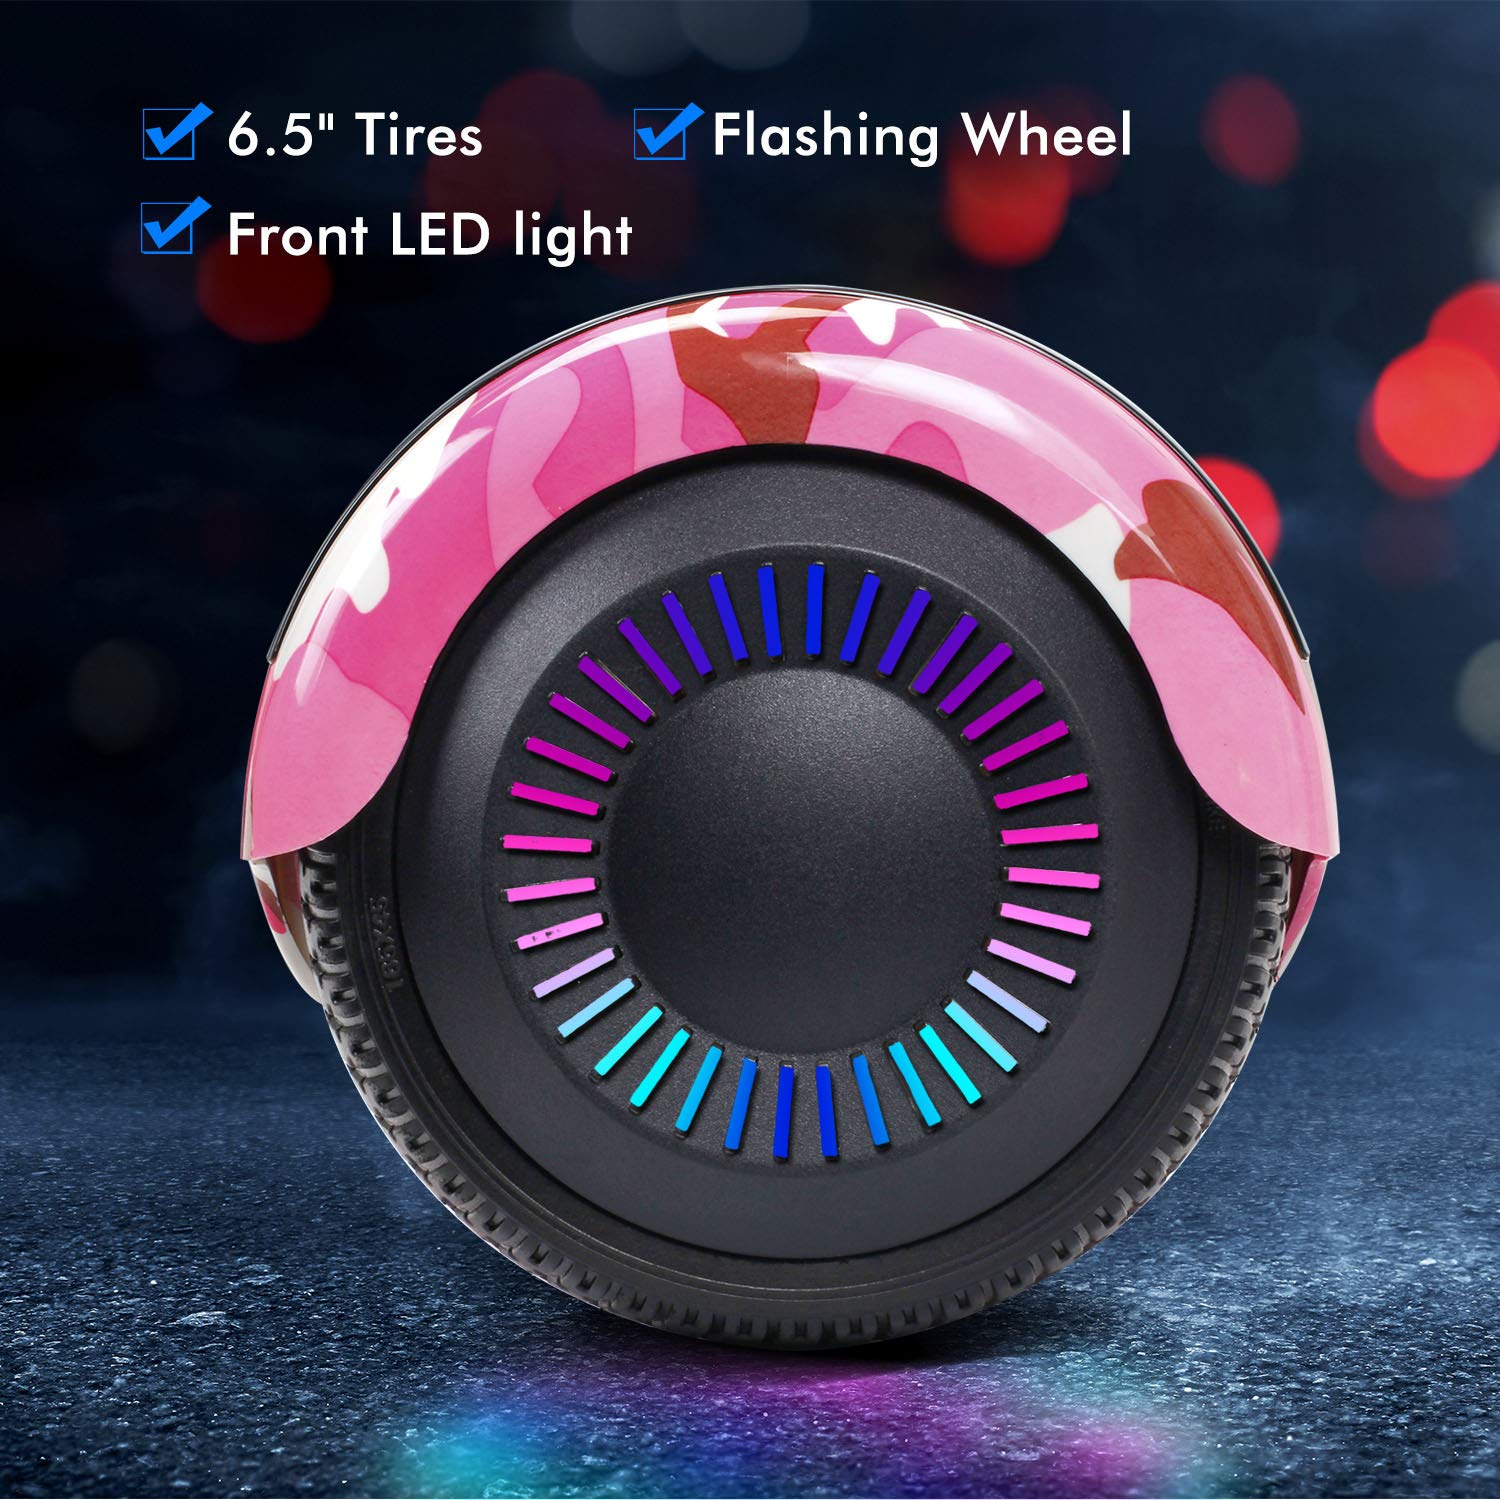 SISIGAD Hoverboard Self Balancing Scooter 6.5'' Two-Wheel Self Balancing Hoverboard with Bluetooth Speaker and LED Lights Electric Scooter for Adult Kids Gift UL 2272 Certified Fun Edition - Pink Camo by SISIGAD (Image #2)